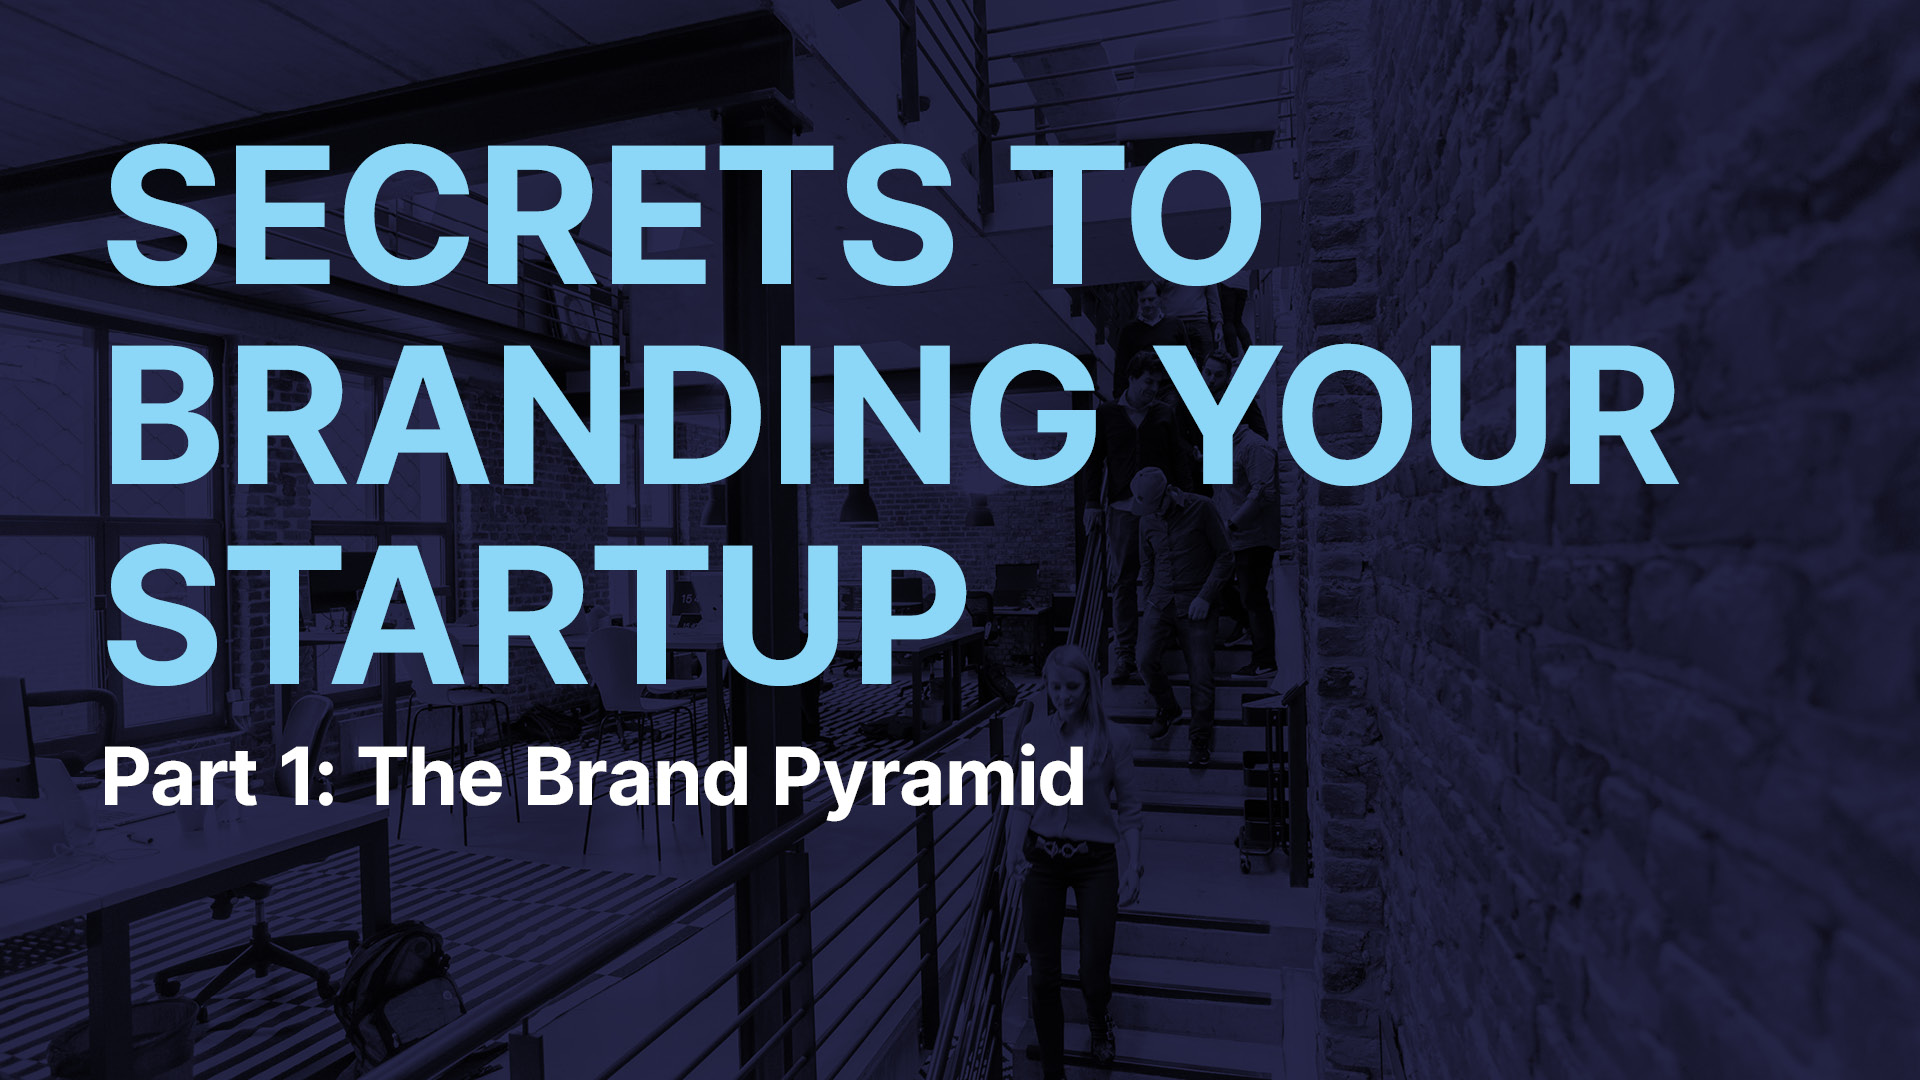 Secrets to Branding your Startup Part 1: The Brand Pyramid